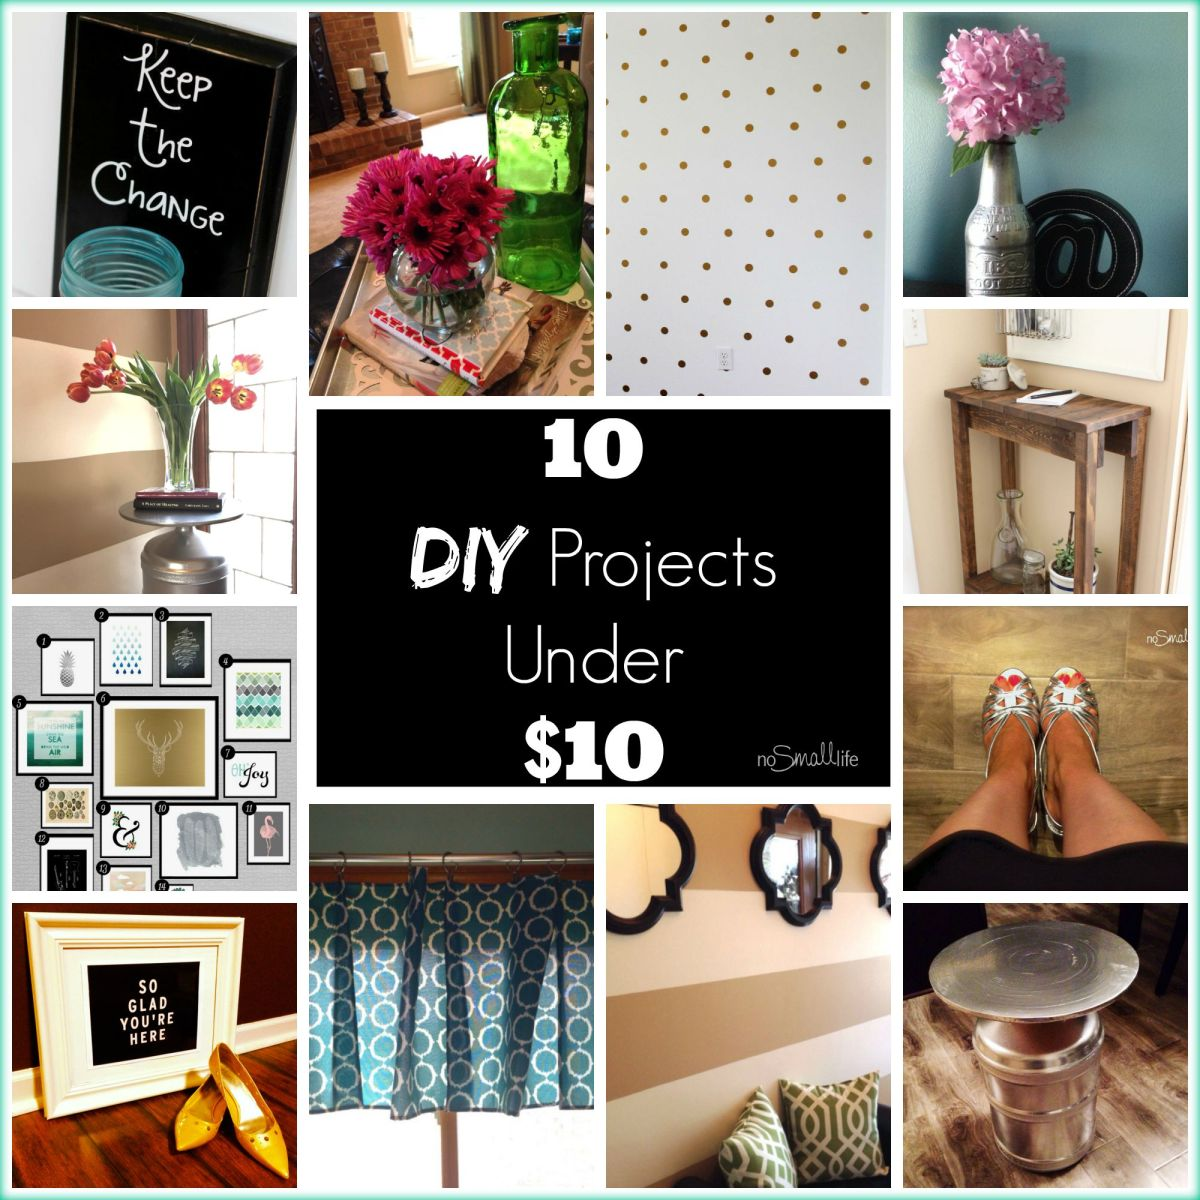 10 DIY Projects Under $10